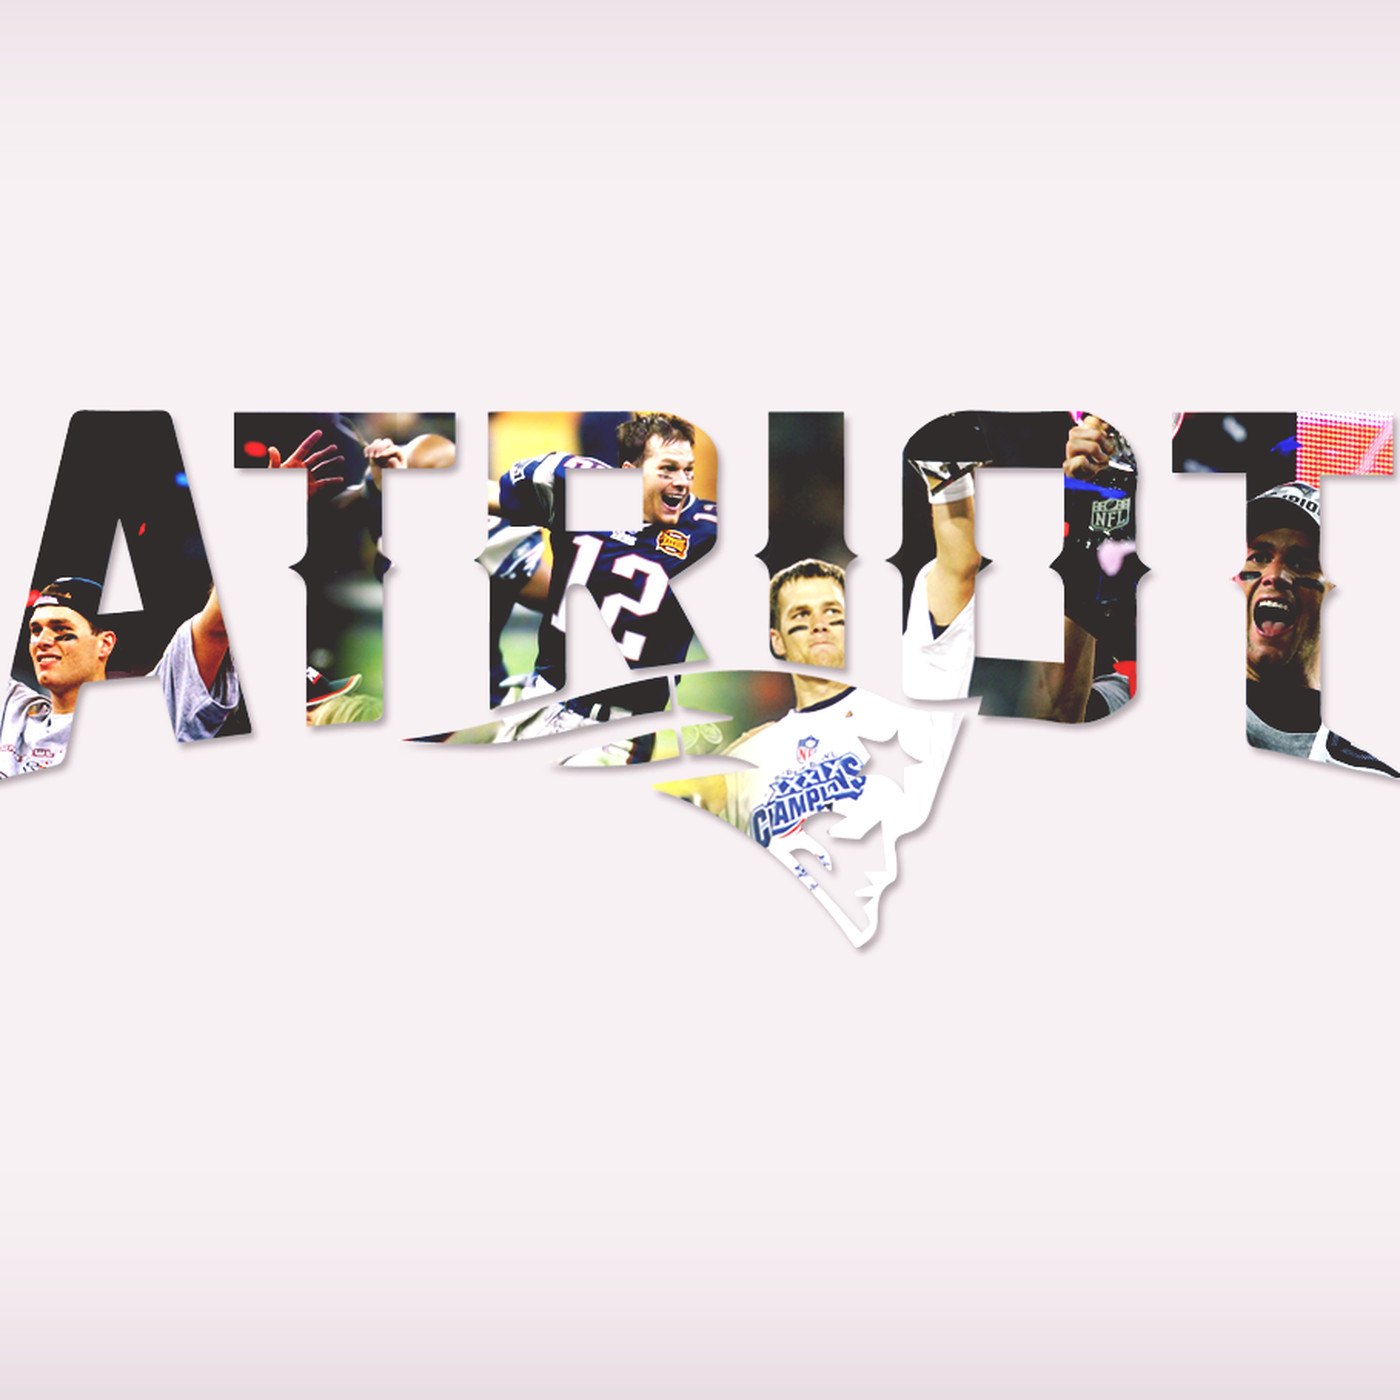 Awesome New England Patriots wallpaper!